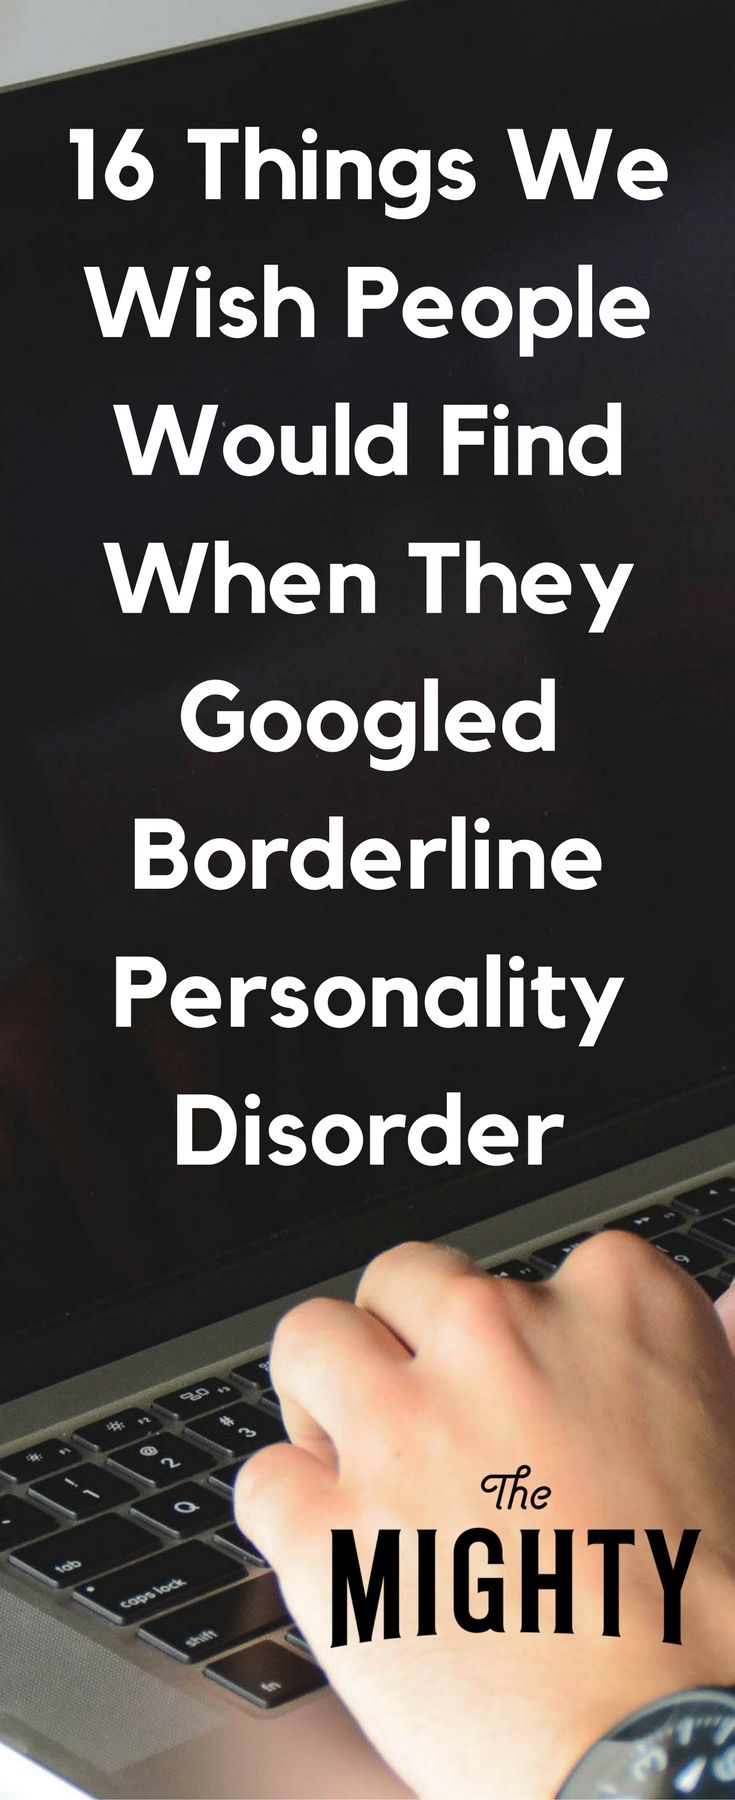 16 Things We Wish People Would Find When They Googled Borderline Personality Disorder